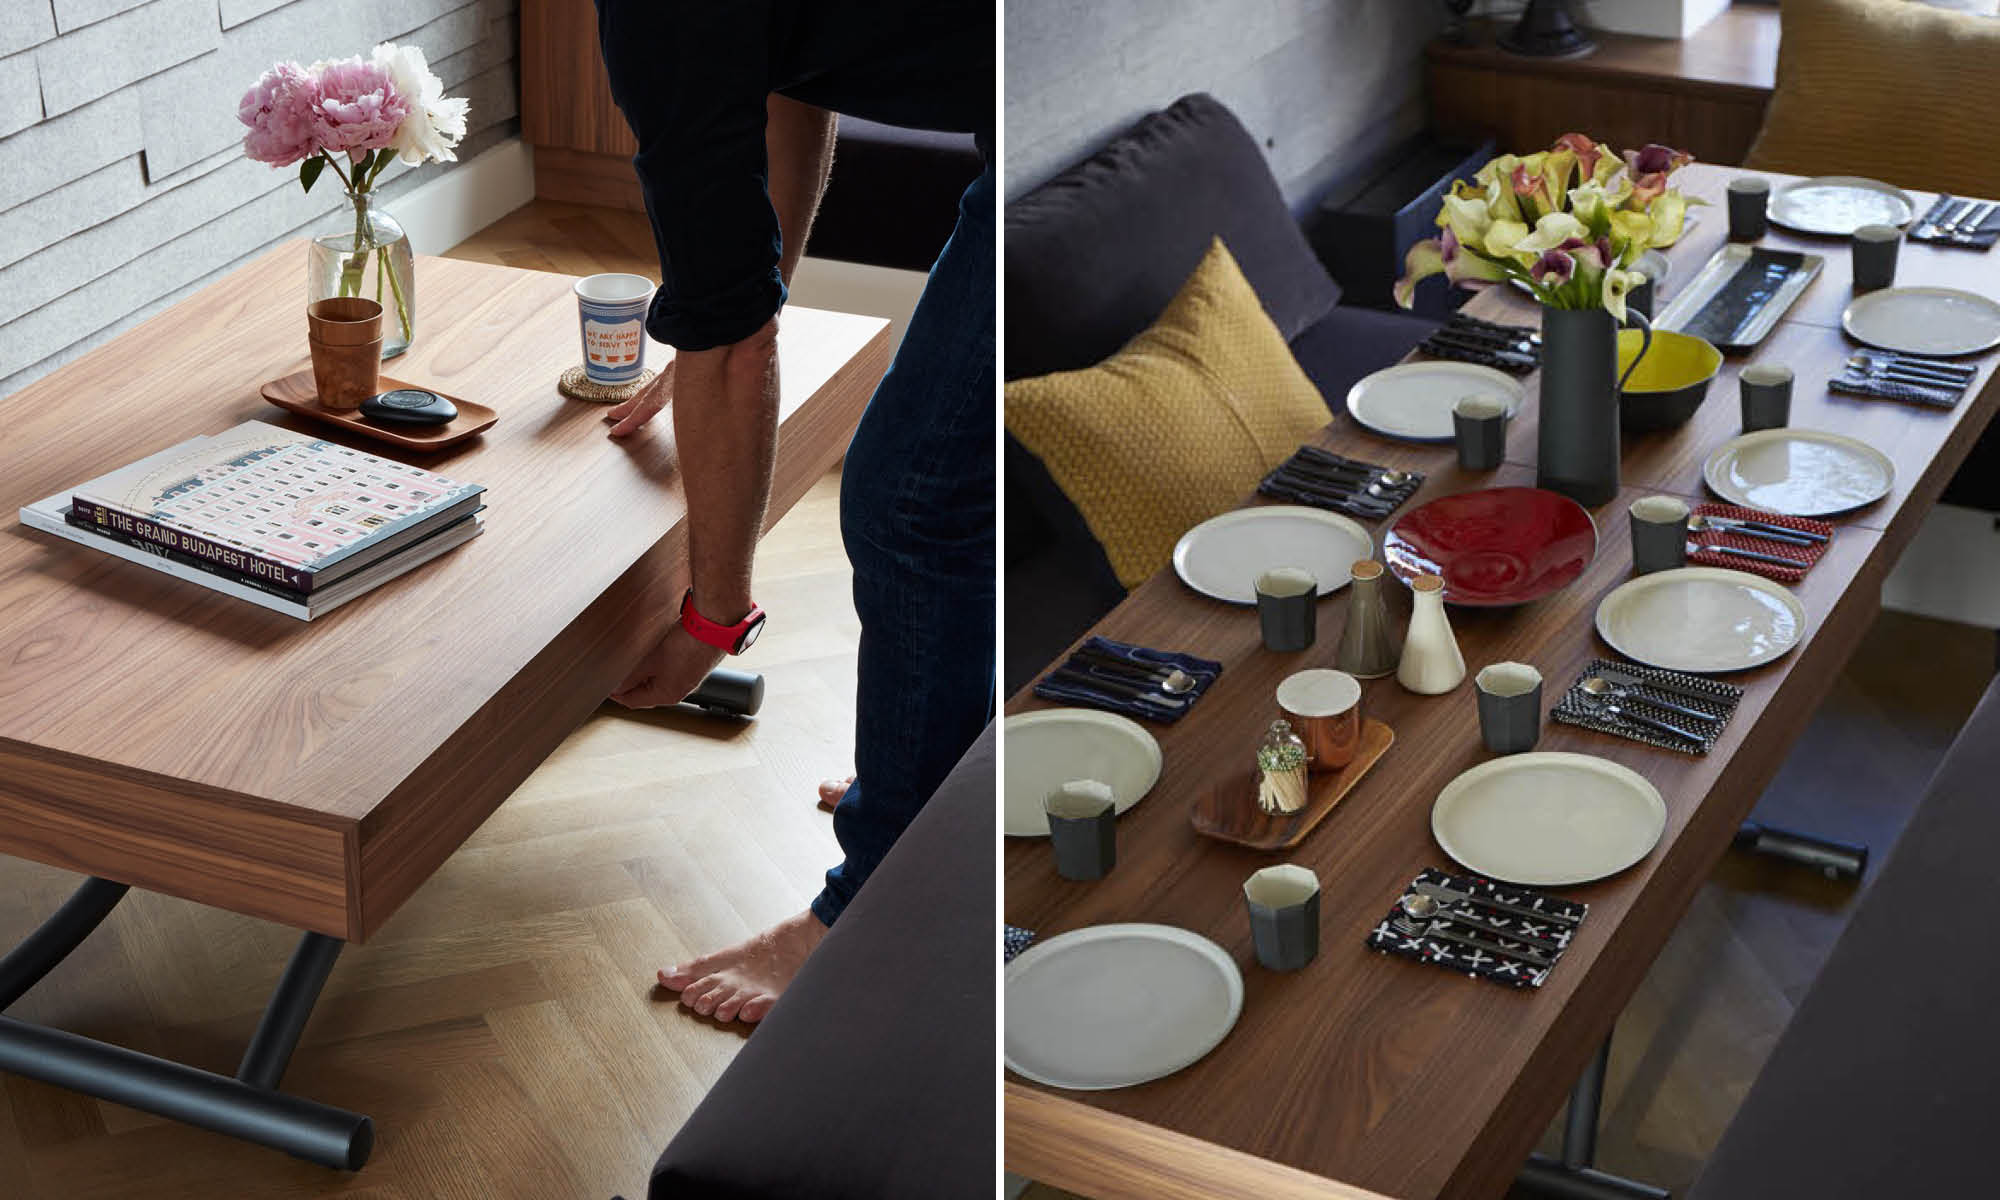 Coffee table folds down into a dining table